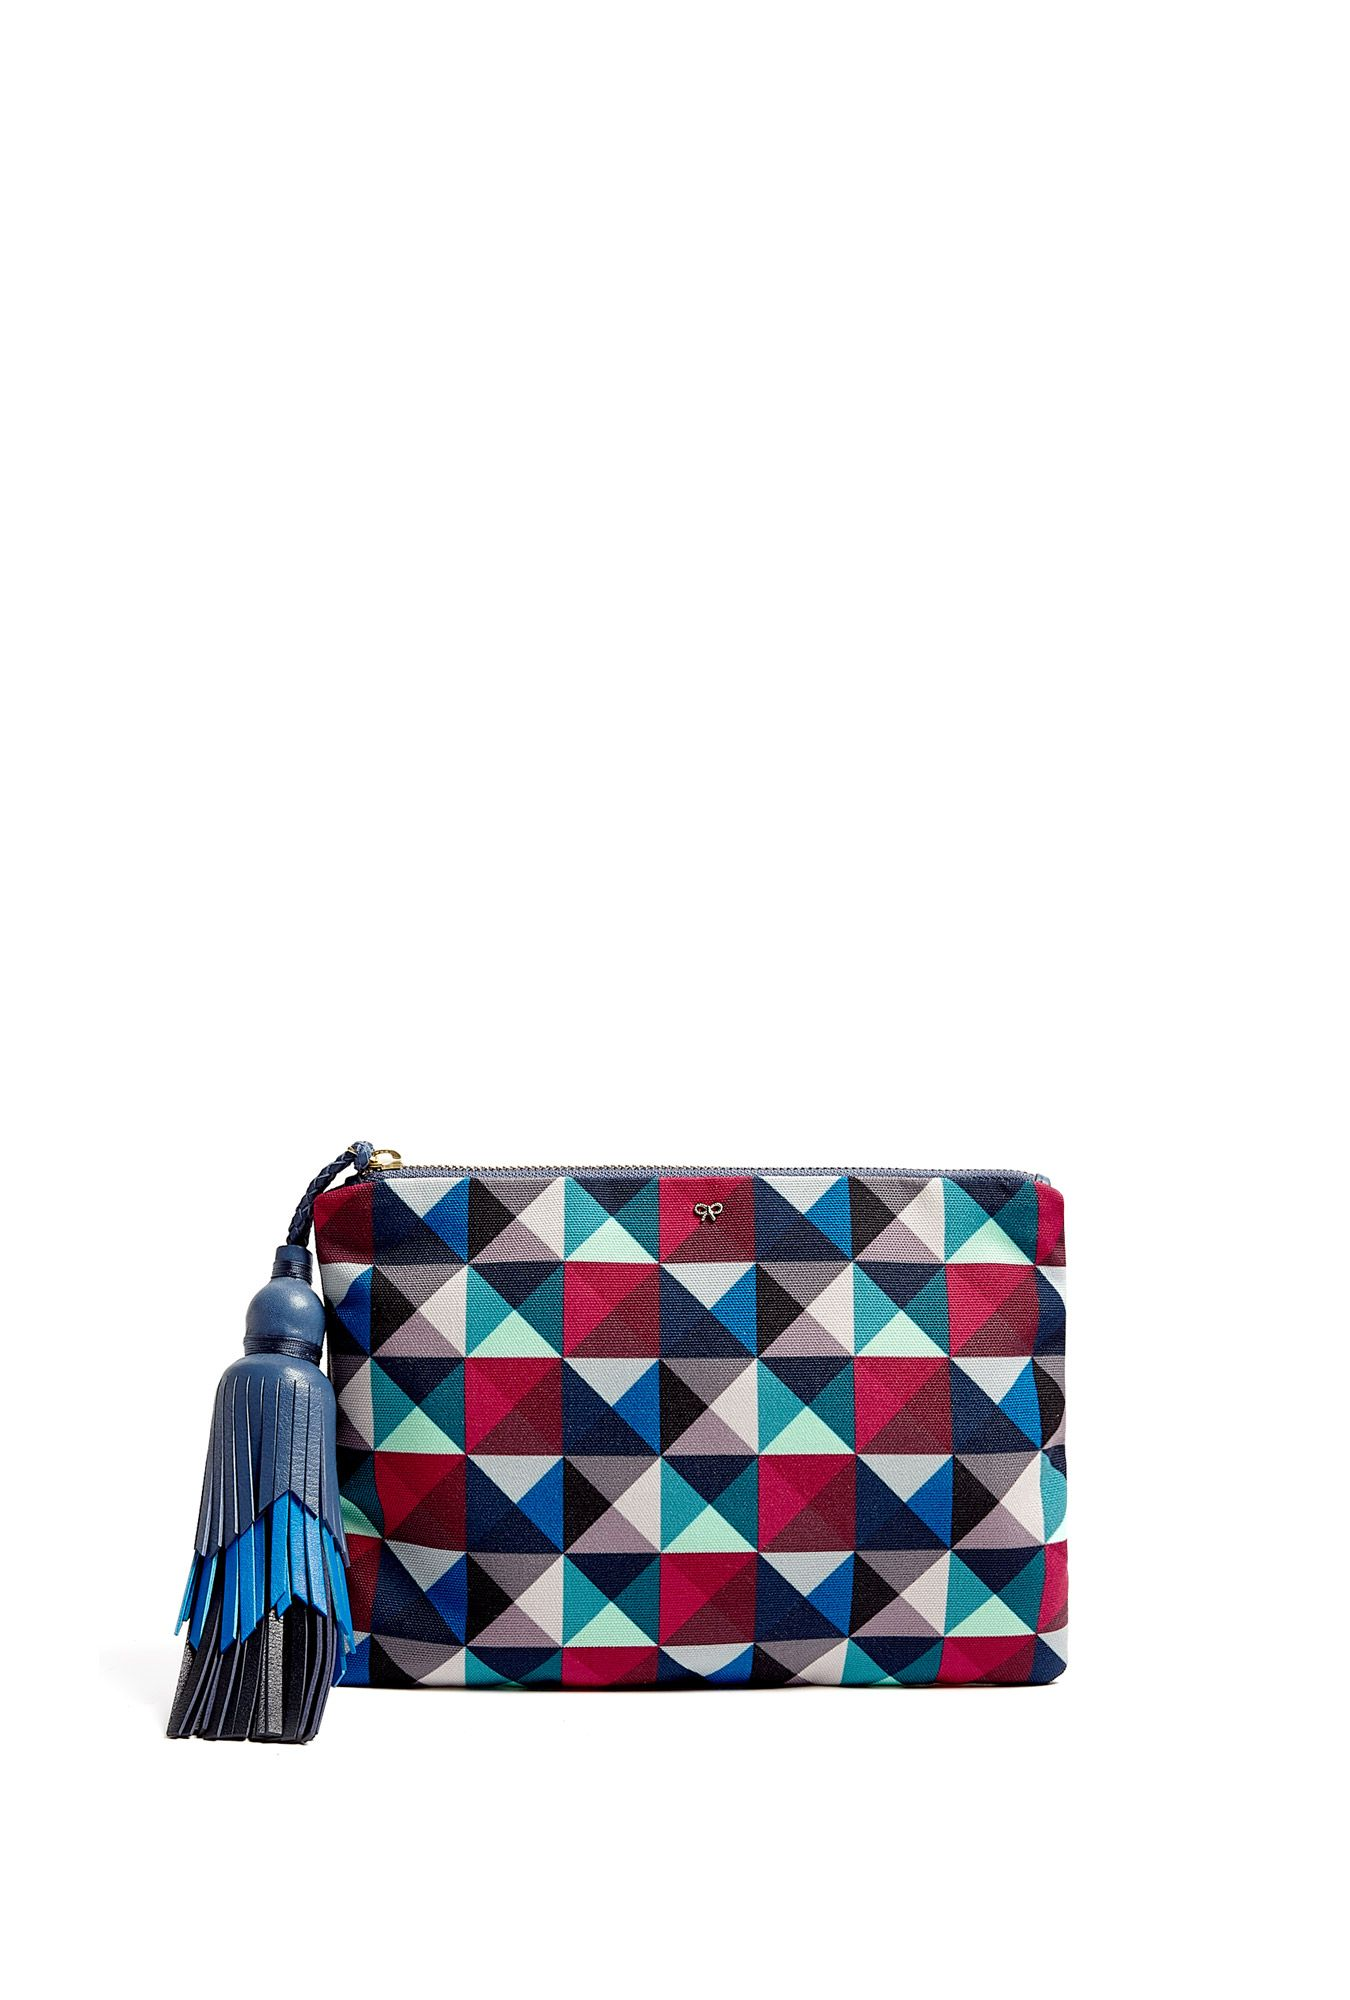 Give your evening clutch an update with a geometric print like this one from Anya Hindmarch. | styloko.com